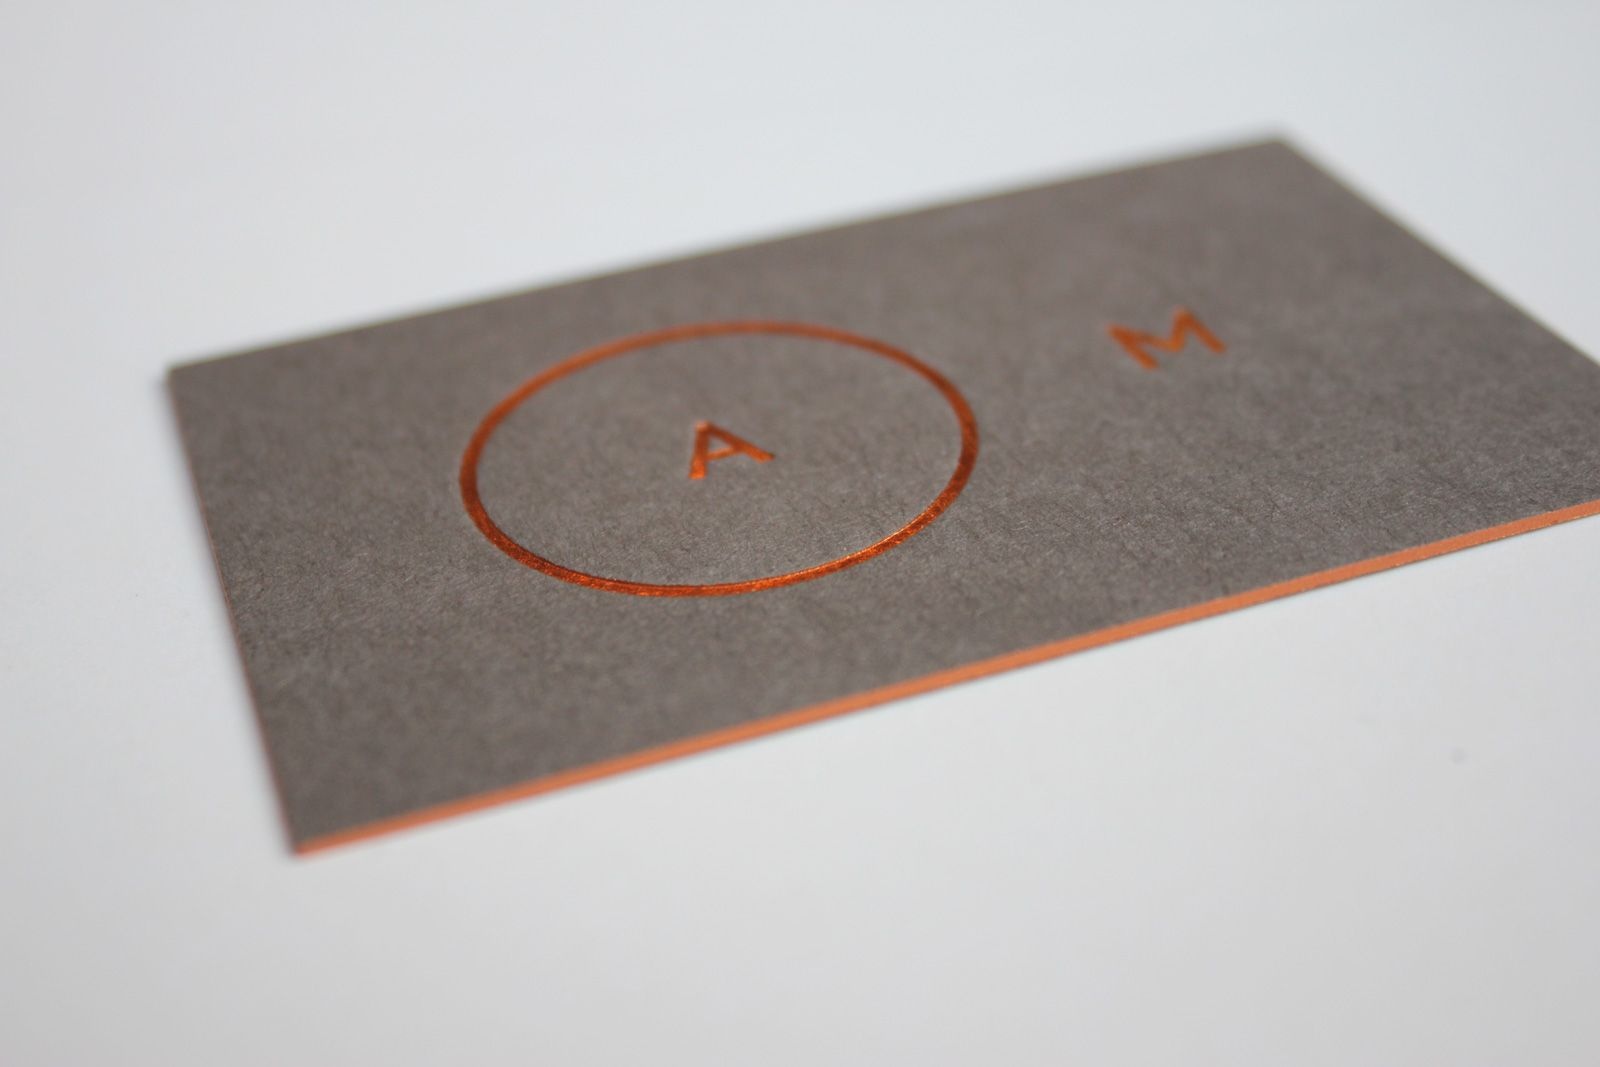 Hot Foil Stamping Business Cards | Business cards, Business and Logos